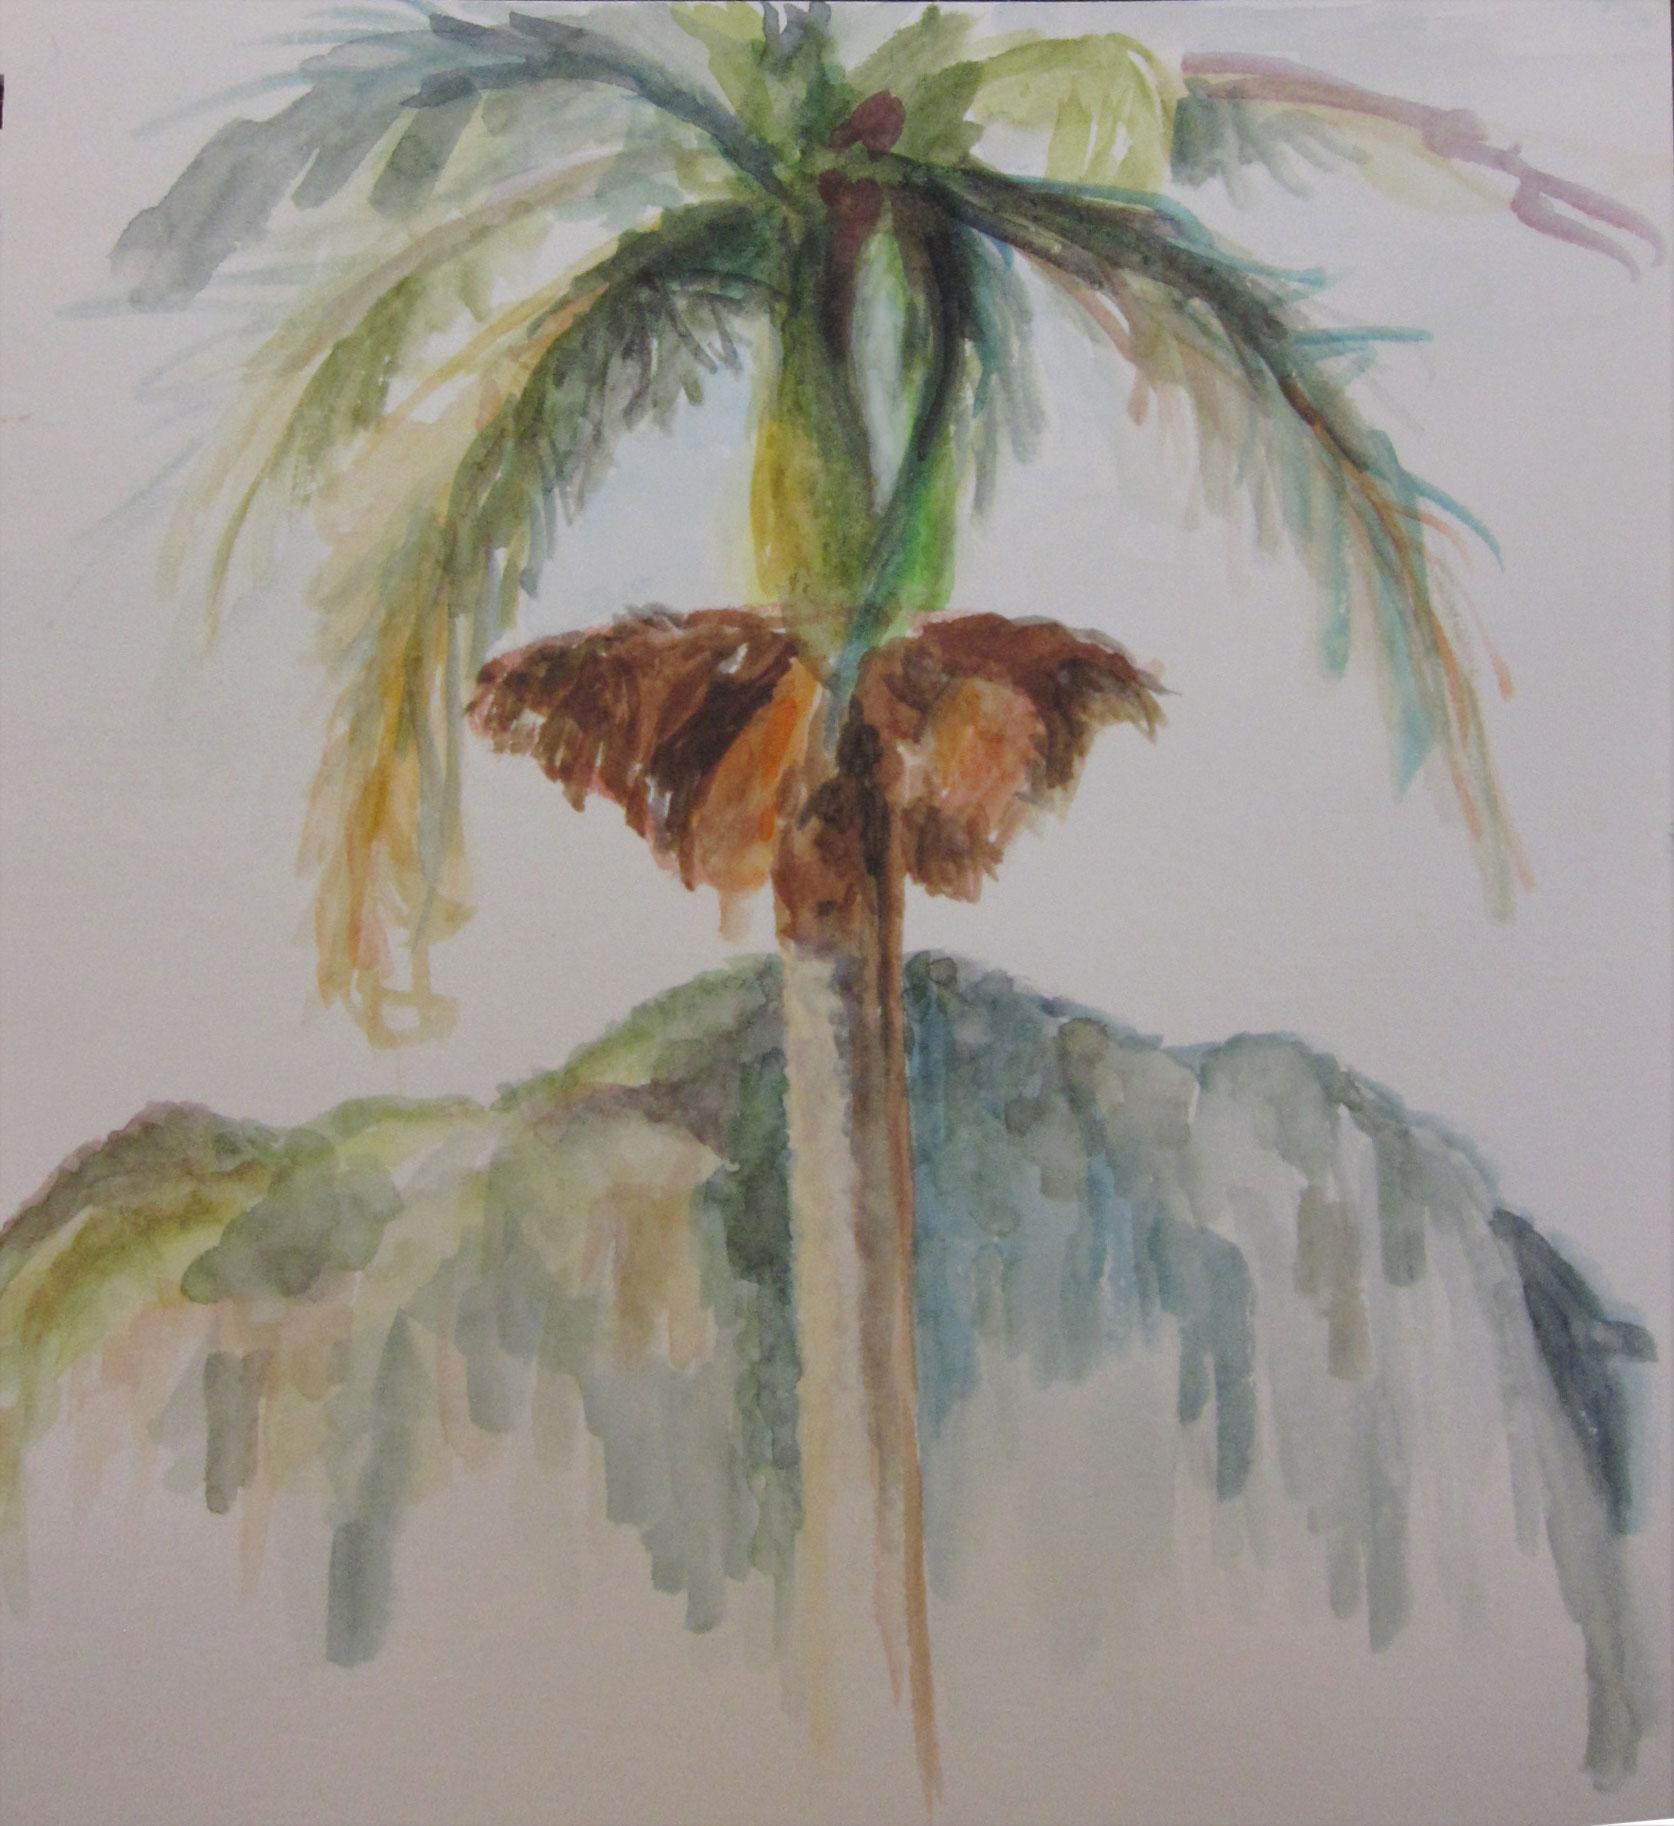 A painting of a solitary palm tree with mogote background, watercolor